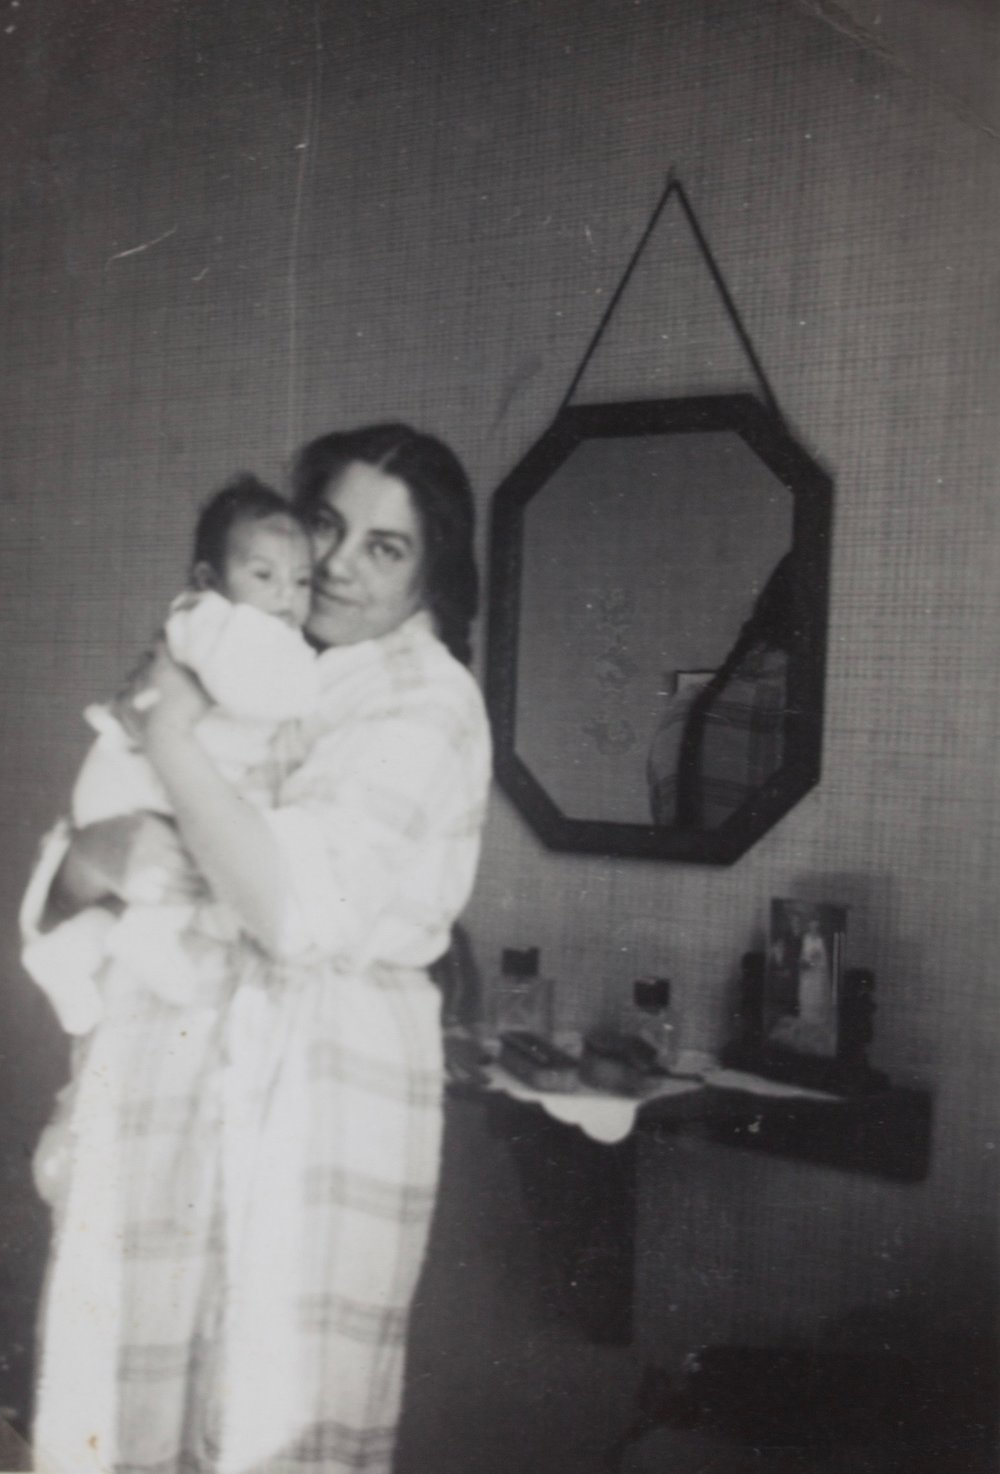 Baby Stella and her mother, from a family album she shared with us.